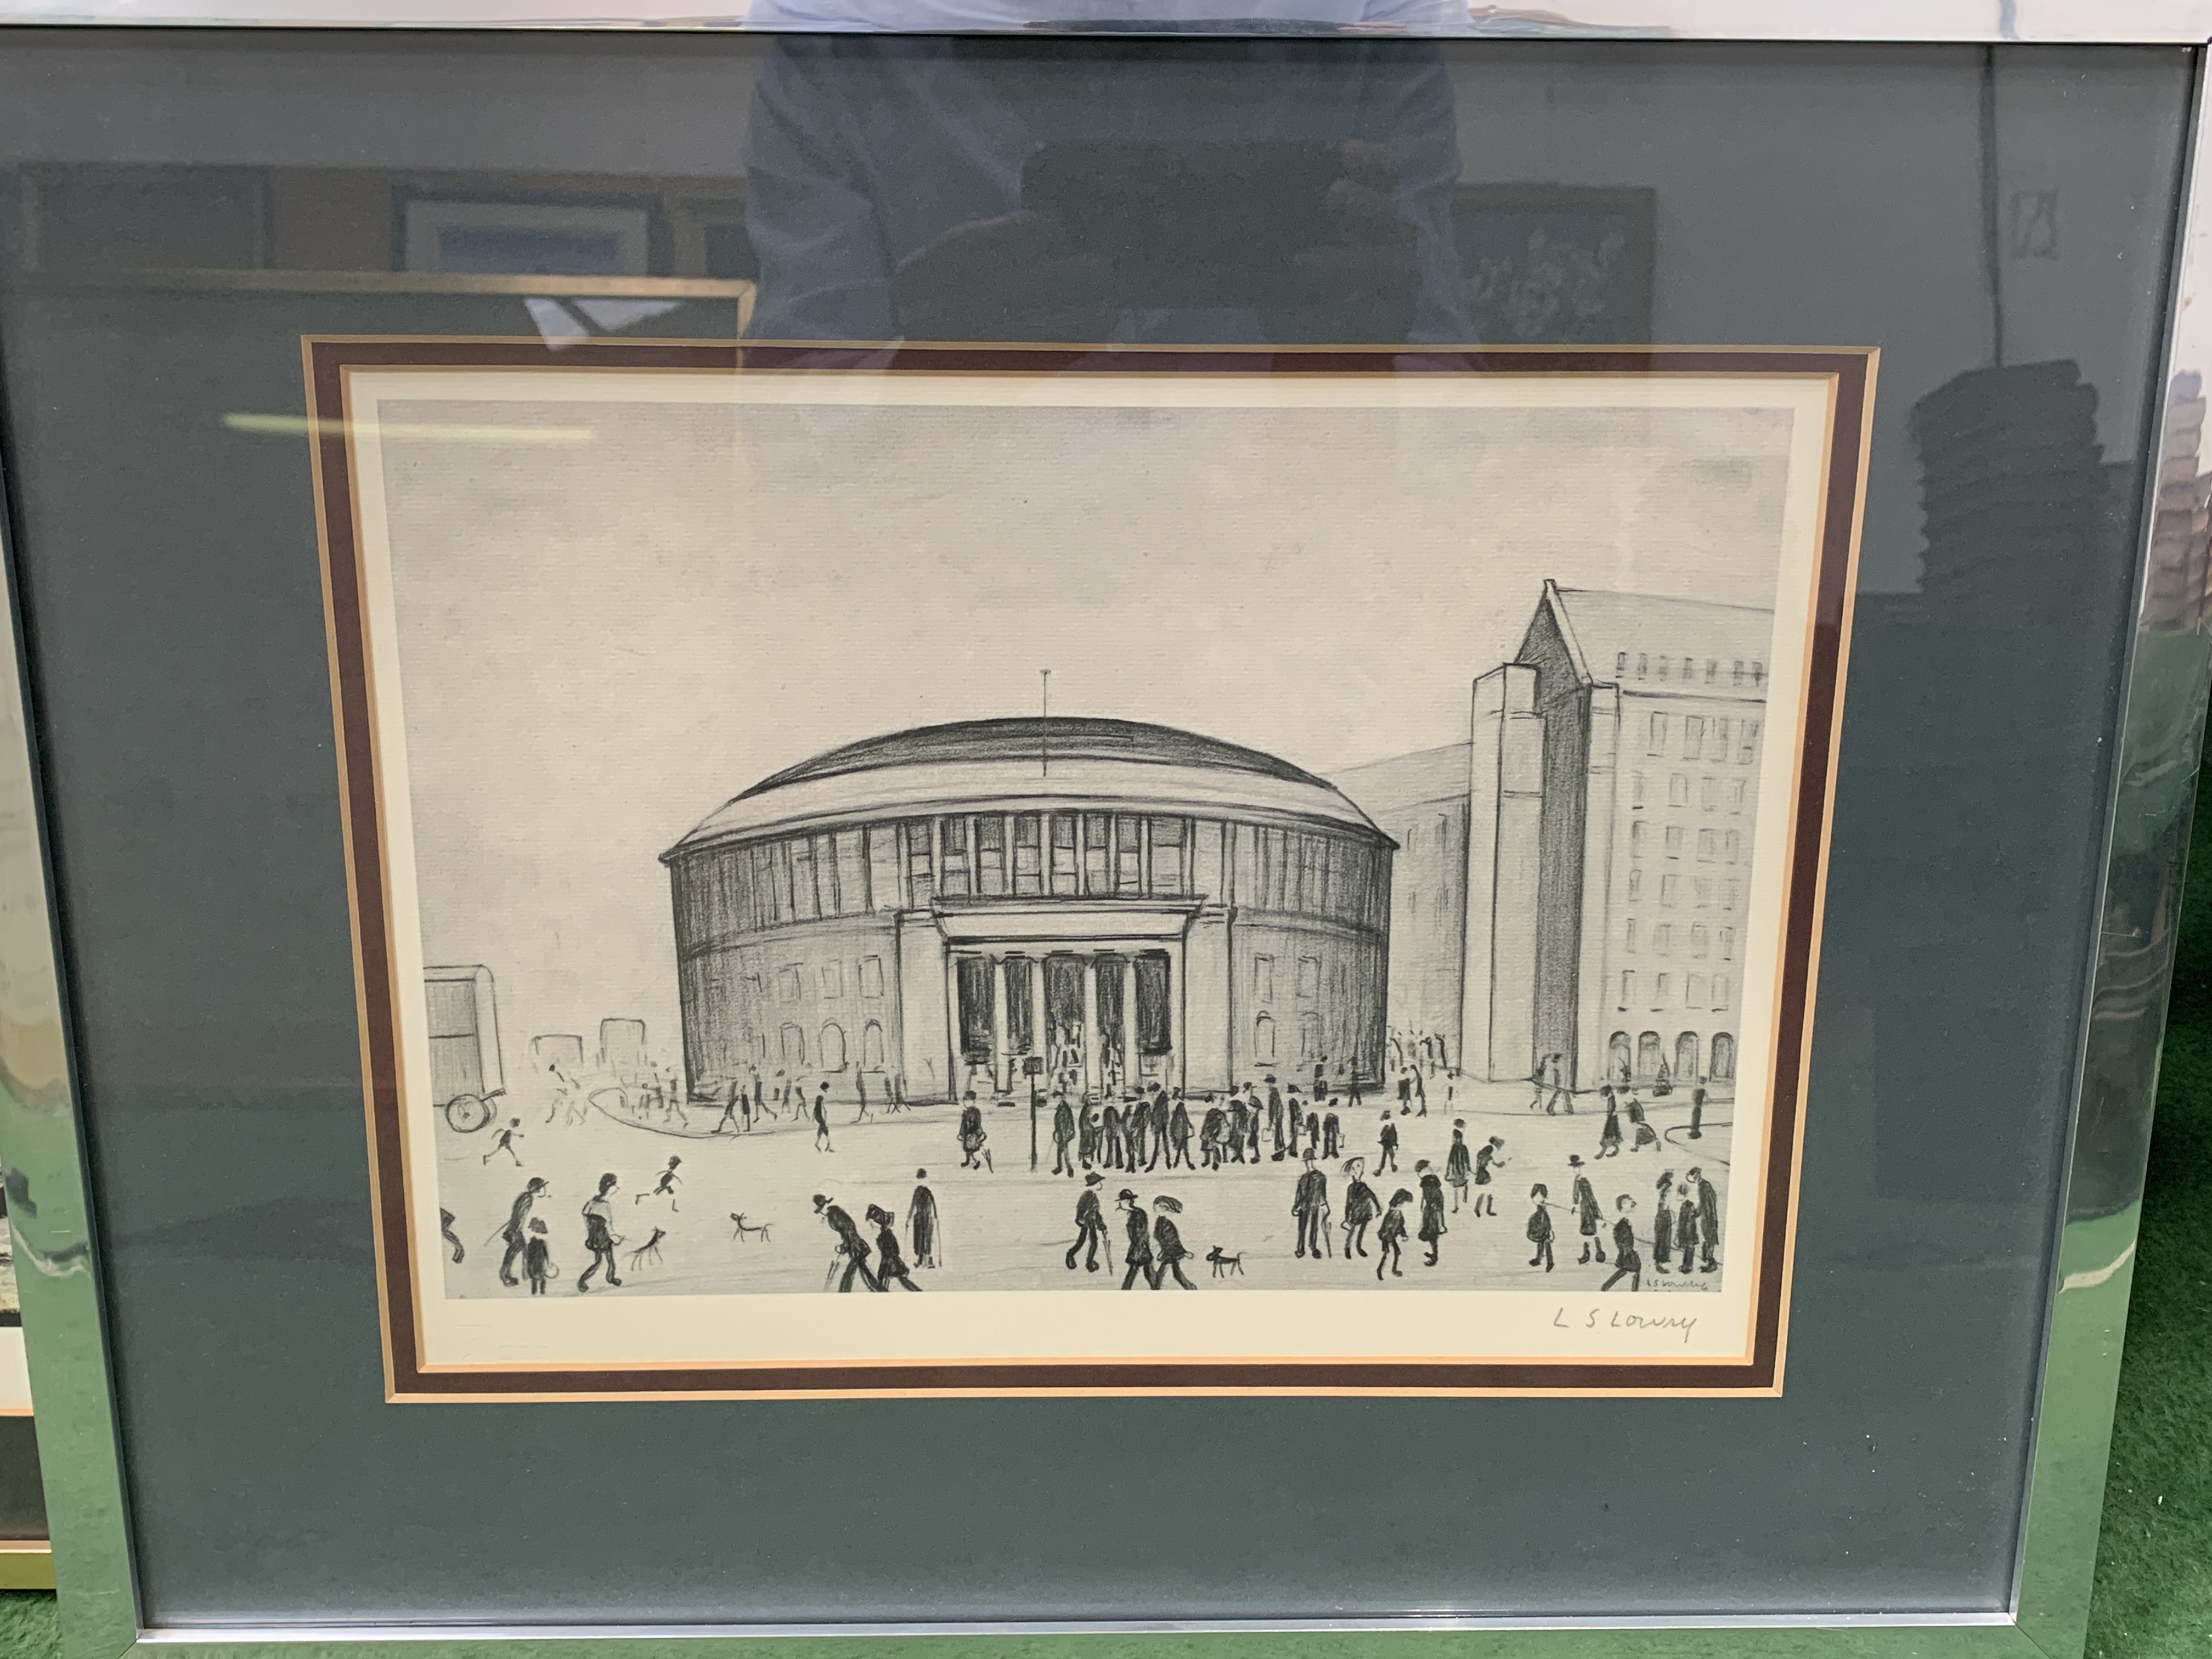 Framed and glazed Limited Edition L S Lowry print of Manchester Reference Library - Image 2 of 4